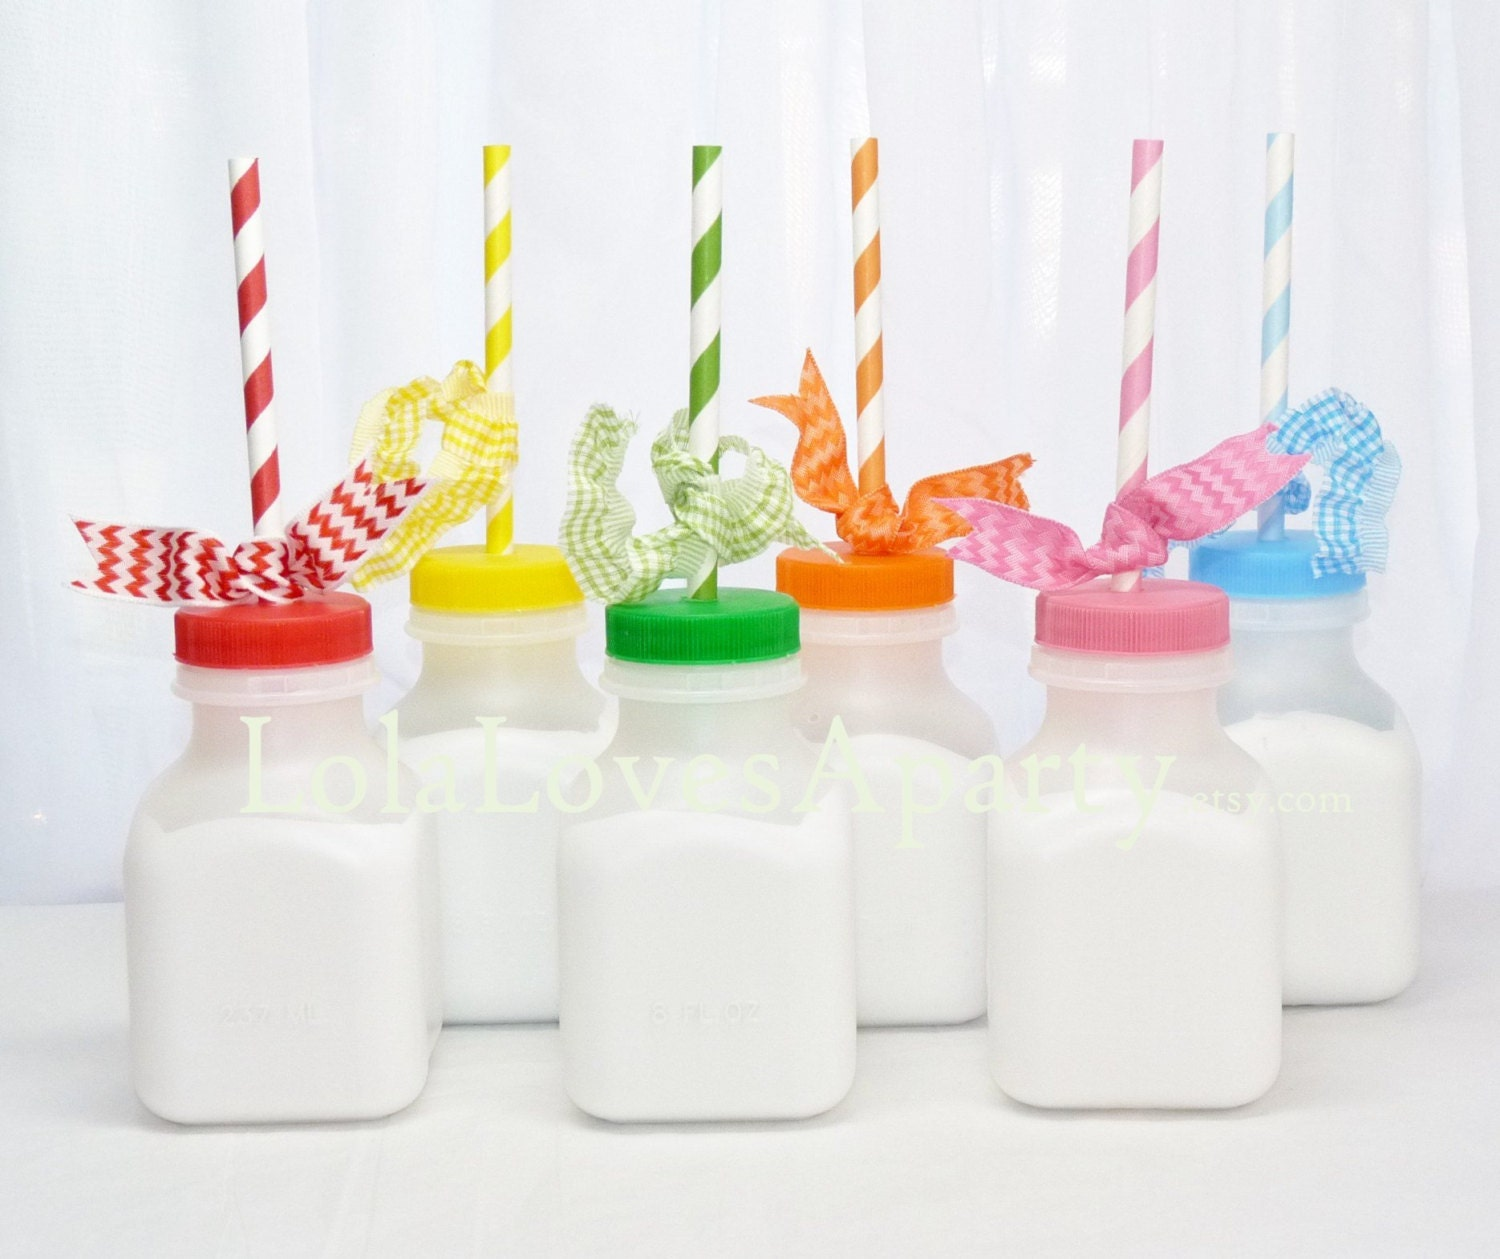 Plastic Old Fashioned Milk Bottles